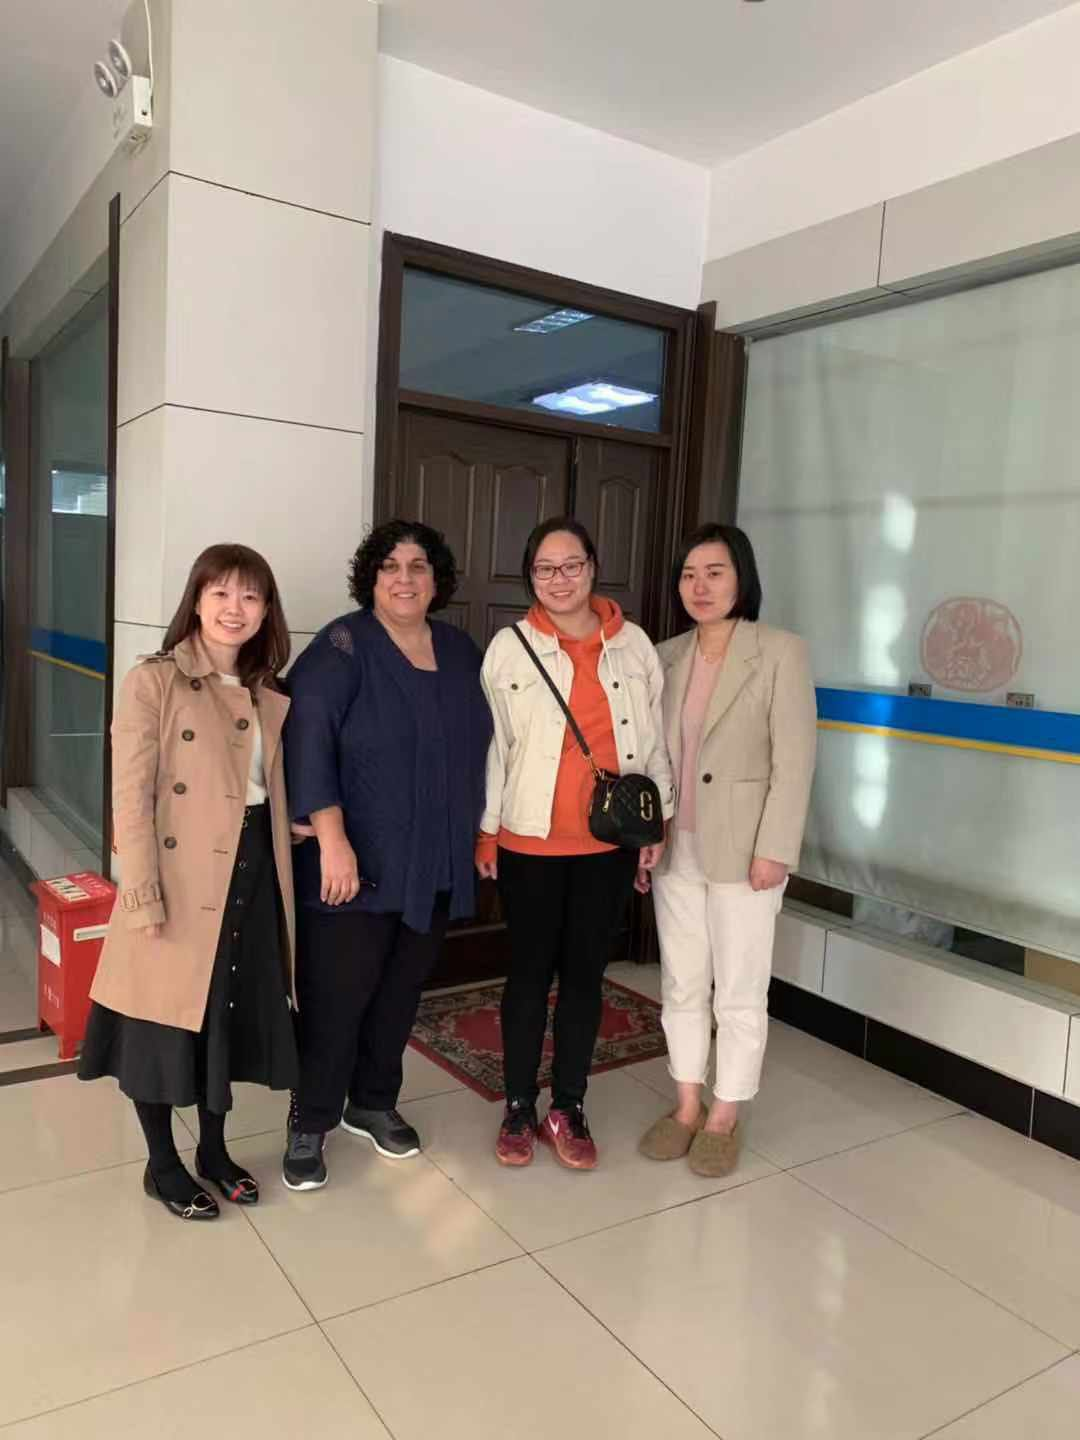 Warmly welcome our client QOSMEDIX from USA to come to our company for visit